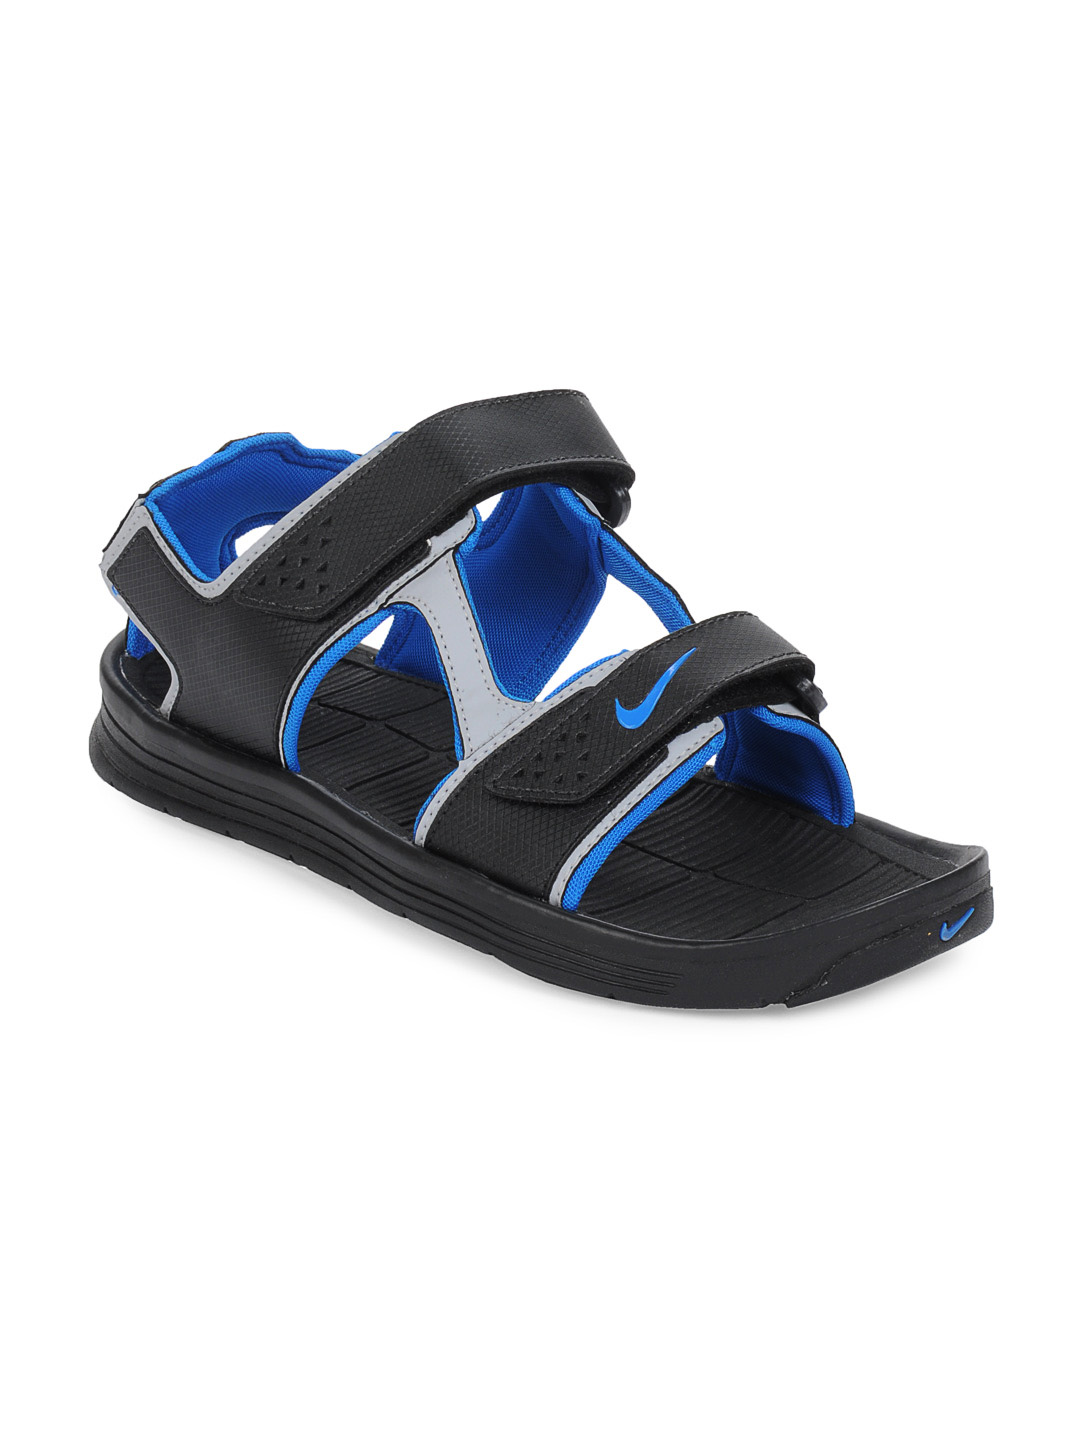 Nike Men Black Urbanfloat Sandals